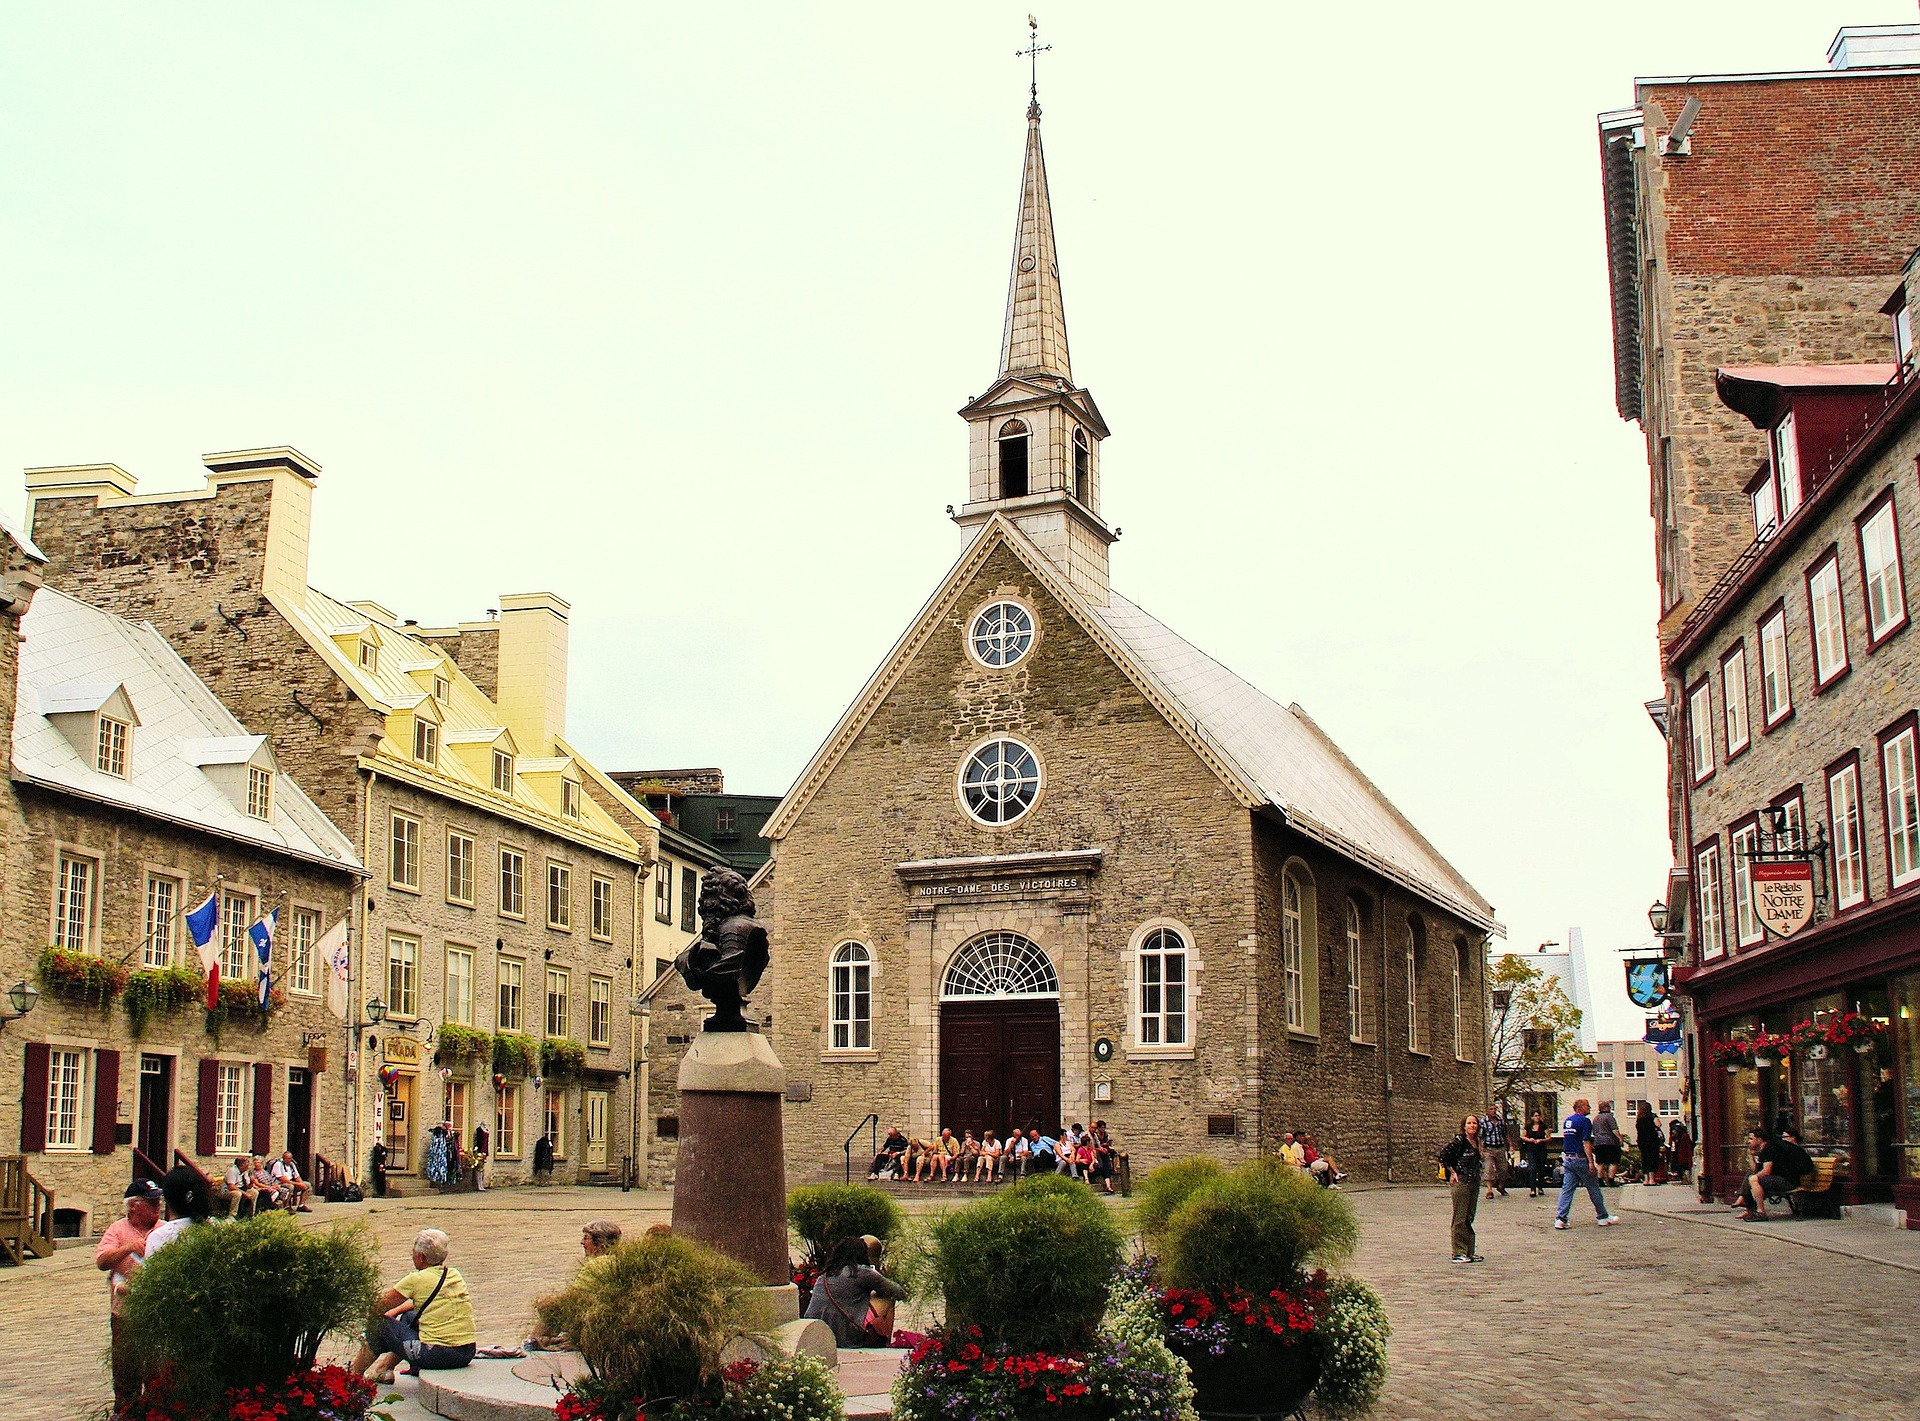 Old church in lower town quebec city school trip itinerary ideas